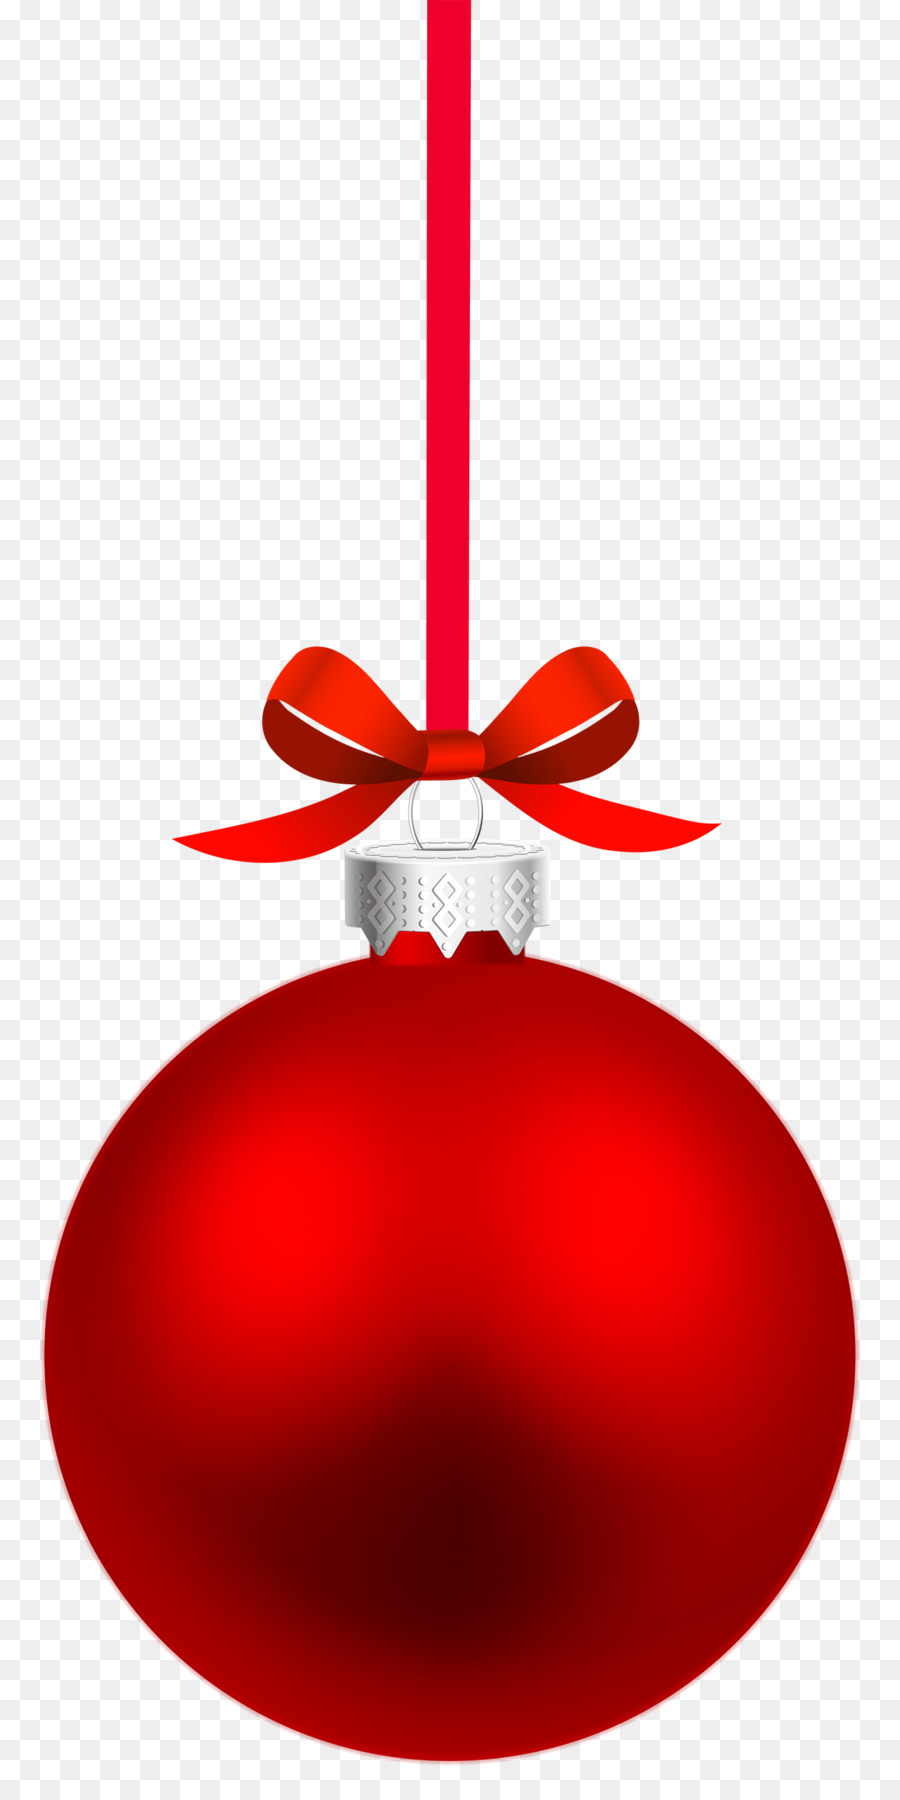 Red Christmas Tree Png Download 1258 2500 Free Transparent